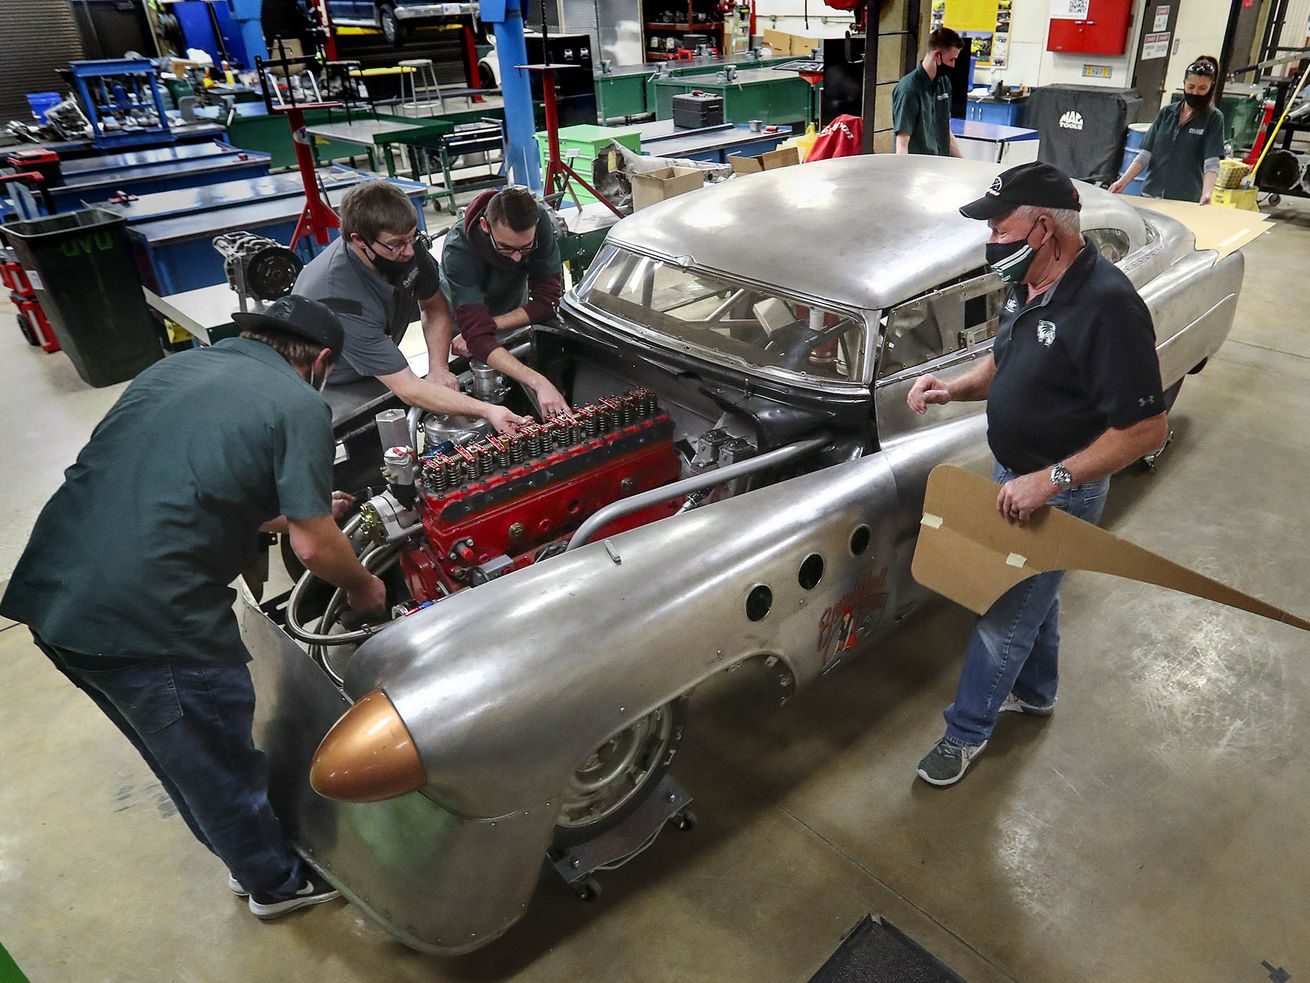 """Jeff Holm, UVU Transportation Technology professional in residence, right, and Todd Low, UVU race team director, second from left, work with UVU automotive students Jordan Olsen, left, Anderson Workman, James Spackman and Hadley Tibbitts, right, as they work on """"Bombshell Betty,"""" the iconic 1952 Buick that broke six land speed world records at the Bonneville Speedway in Utah, at the Sparks Automotive building on the UVU campus in Orem on Wednesday, Nov. 18, 2020. The team has updated and reengineered the vehicle to break the 200 mph mark."""